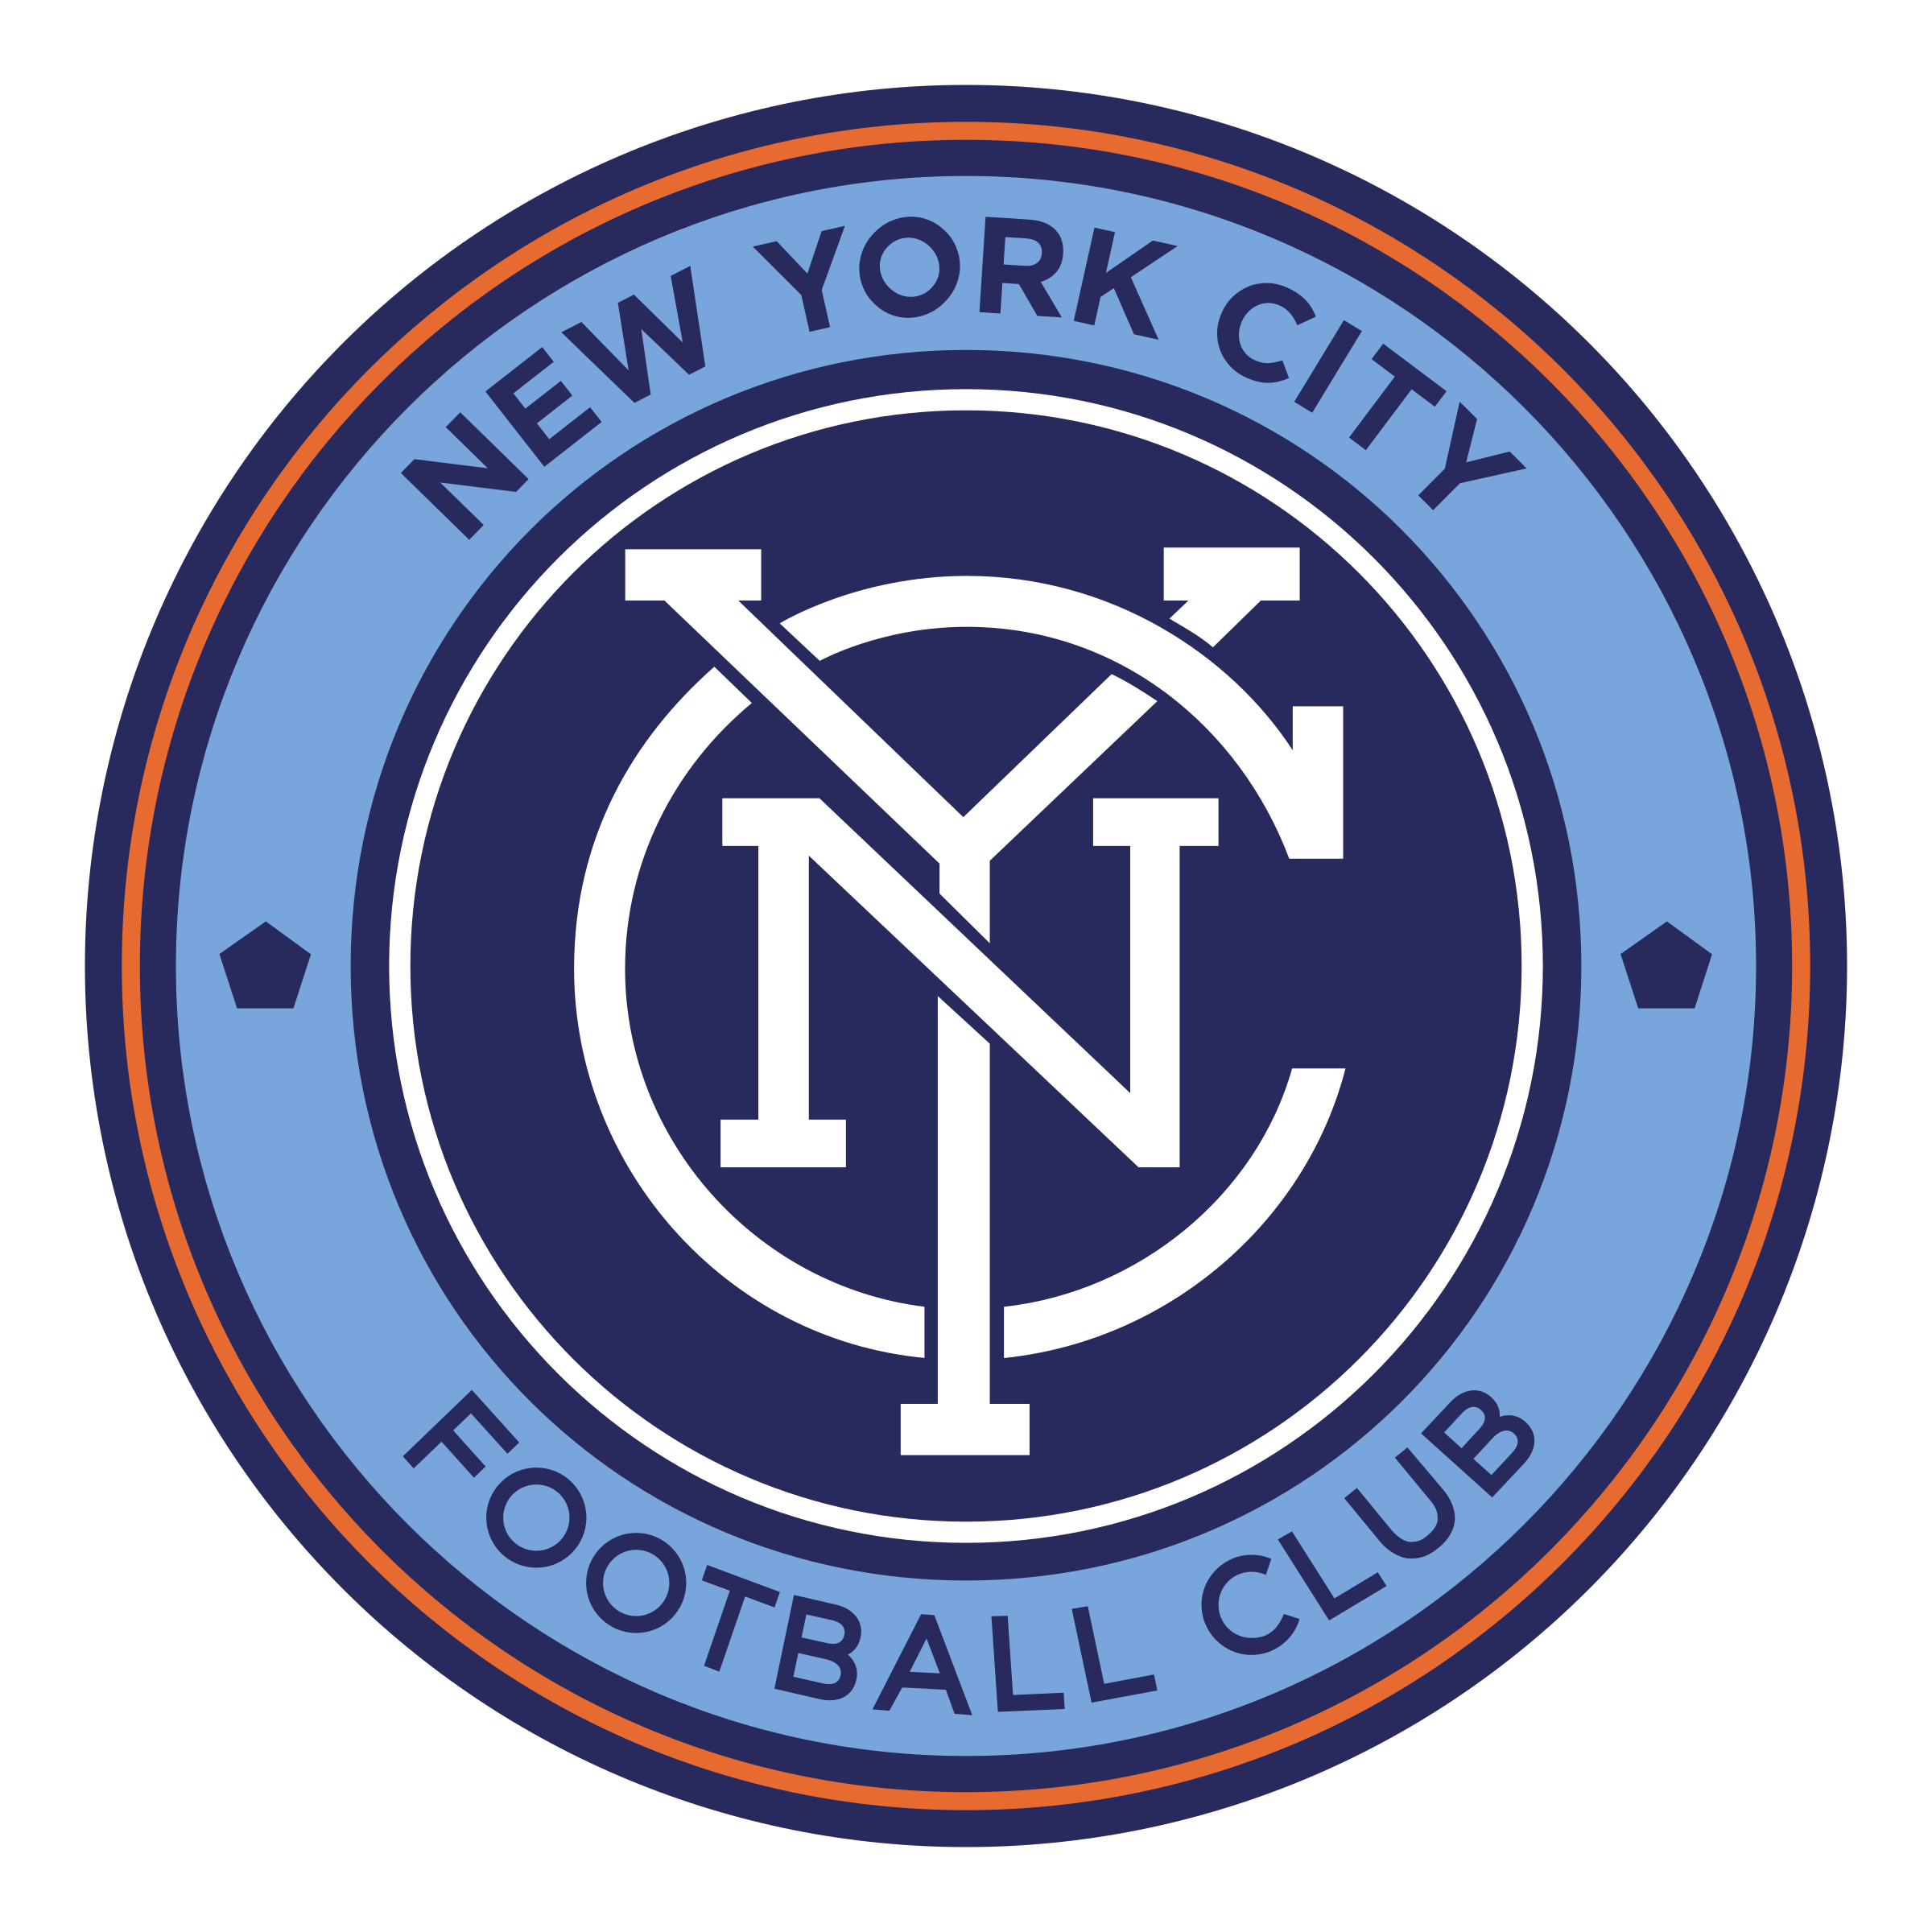 New york city fc logo download free clipart with a.